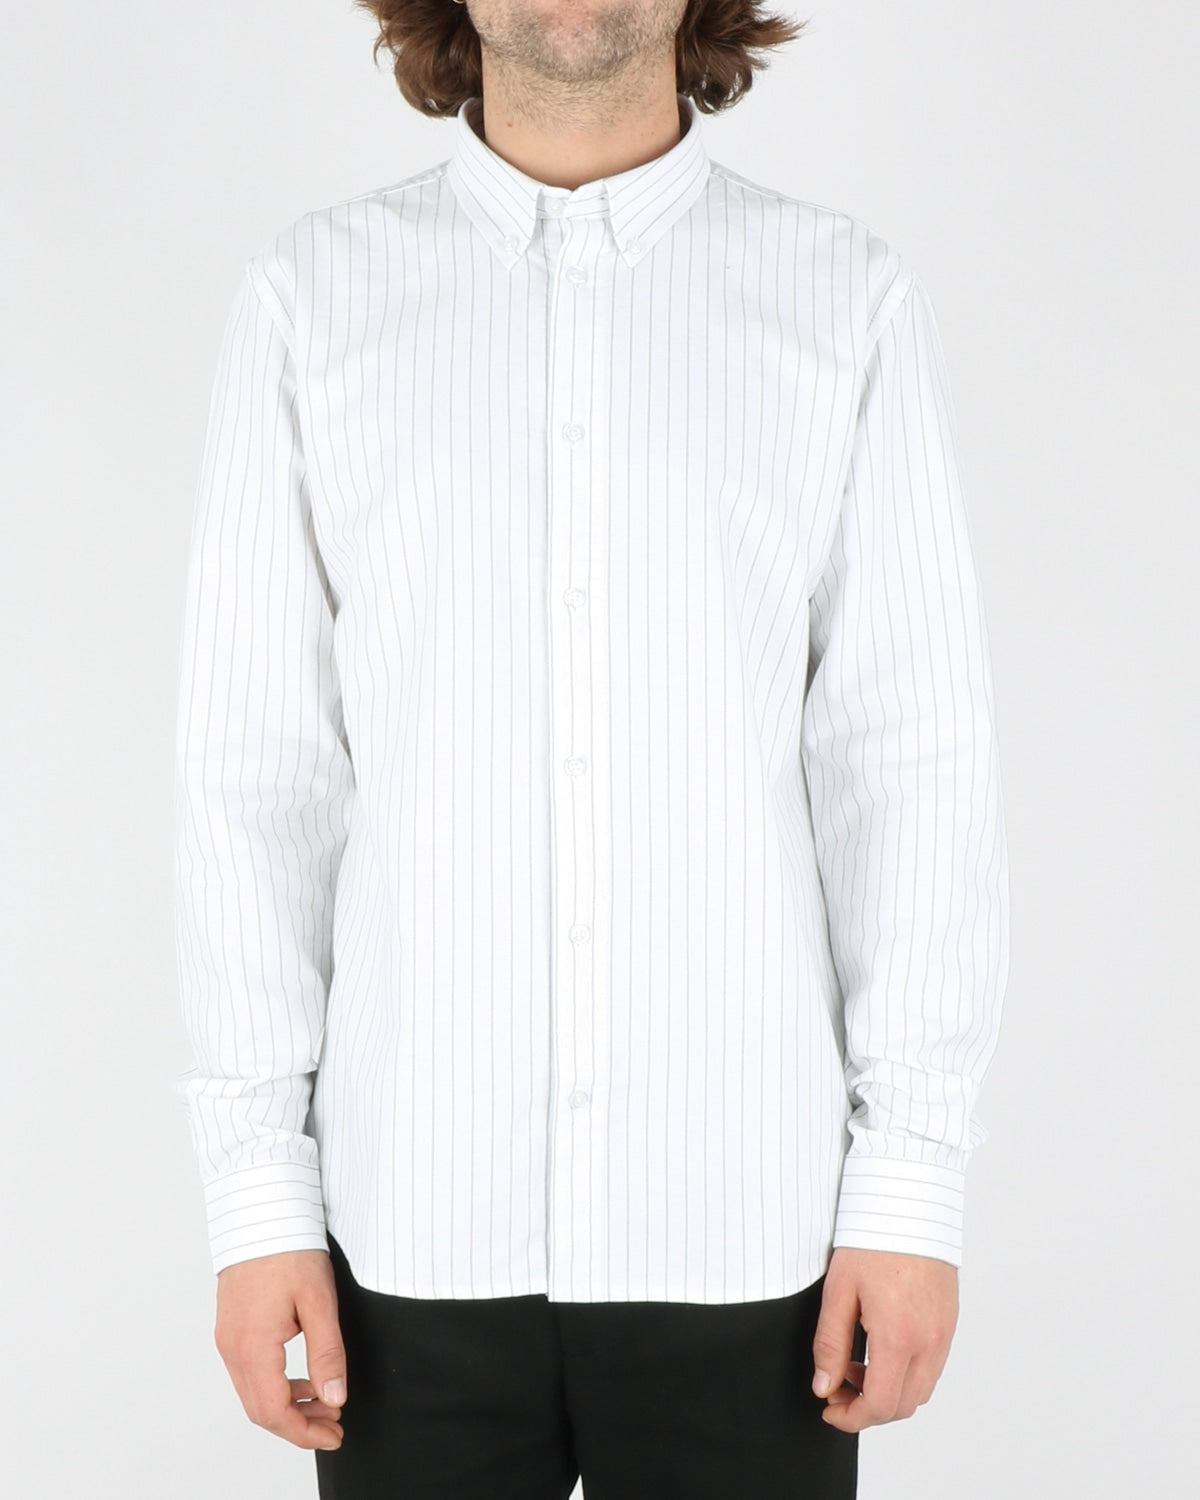 woodbird_trime stripe shirt_white grey_1_4